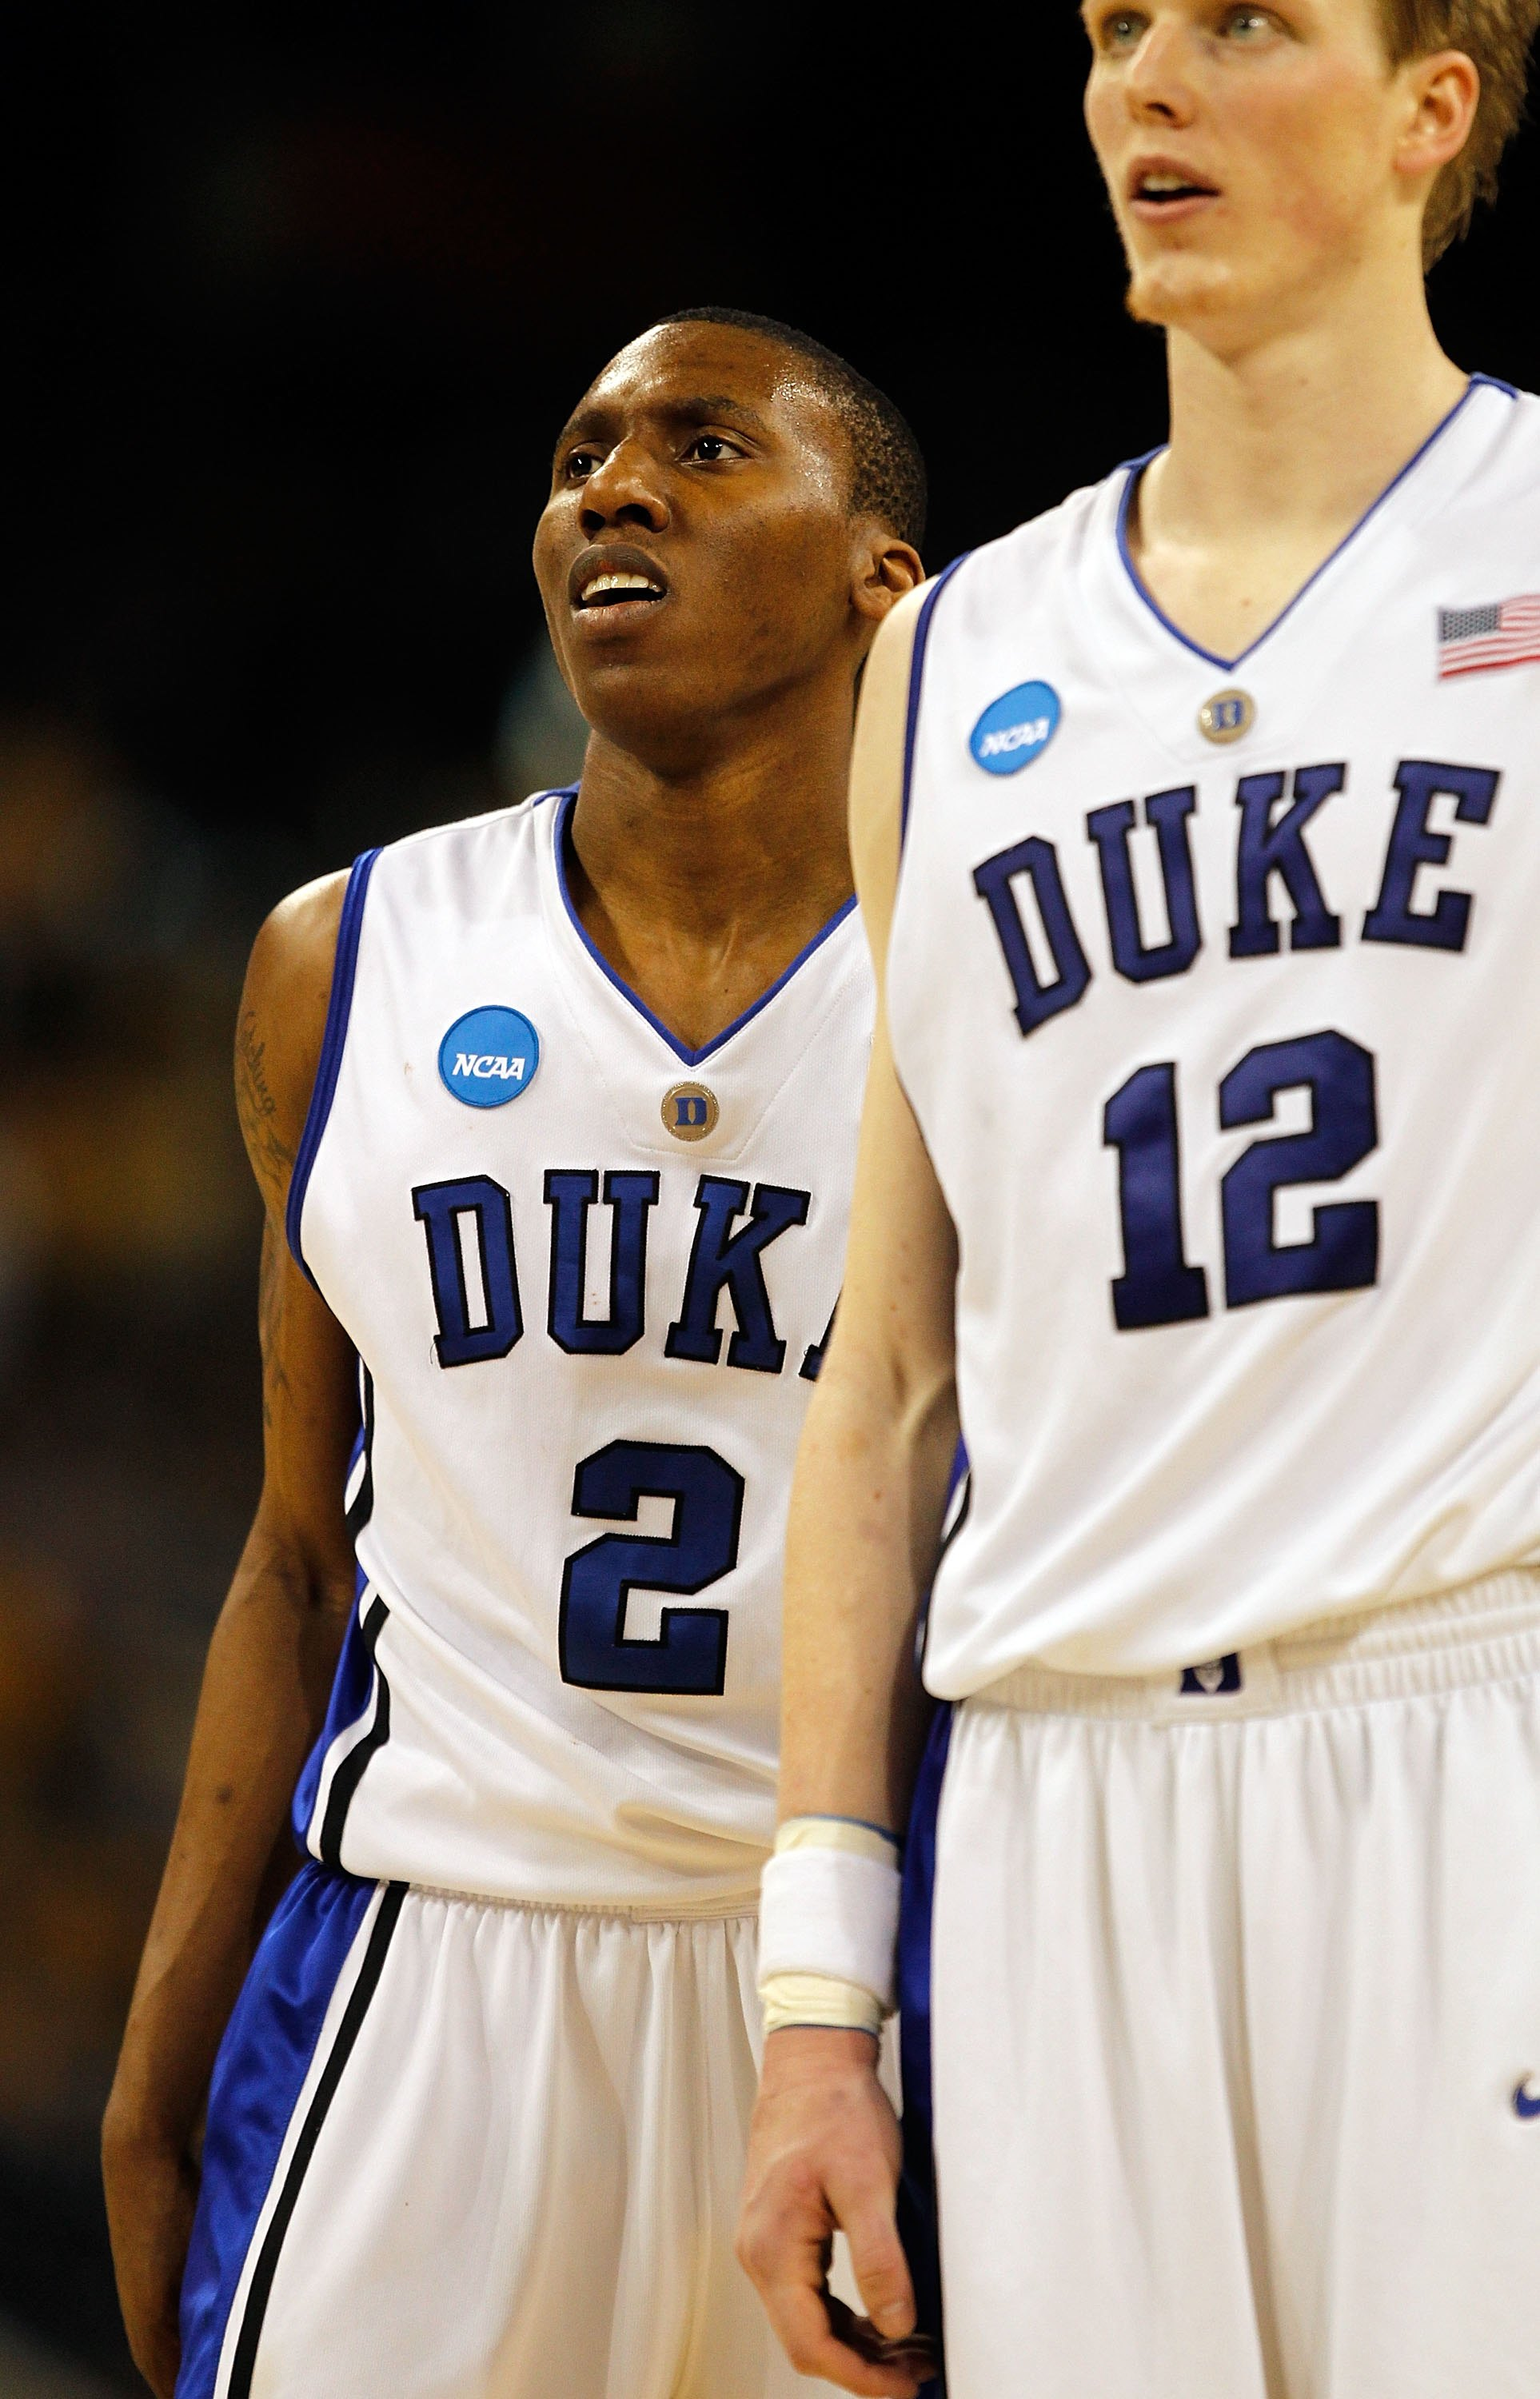 HOUSTON - MARCH 28: Nolan Smith #2 and Kyle Singler #12 of the Duke Blue Devils wait as a teammate shoots free-throws against the Baylor Bears during the south regional final of the 2010 NCAA men's basketball tournament at Reliant Stadium on March 28, 201